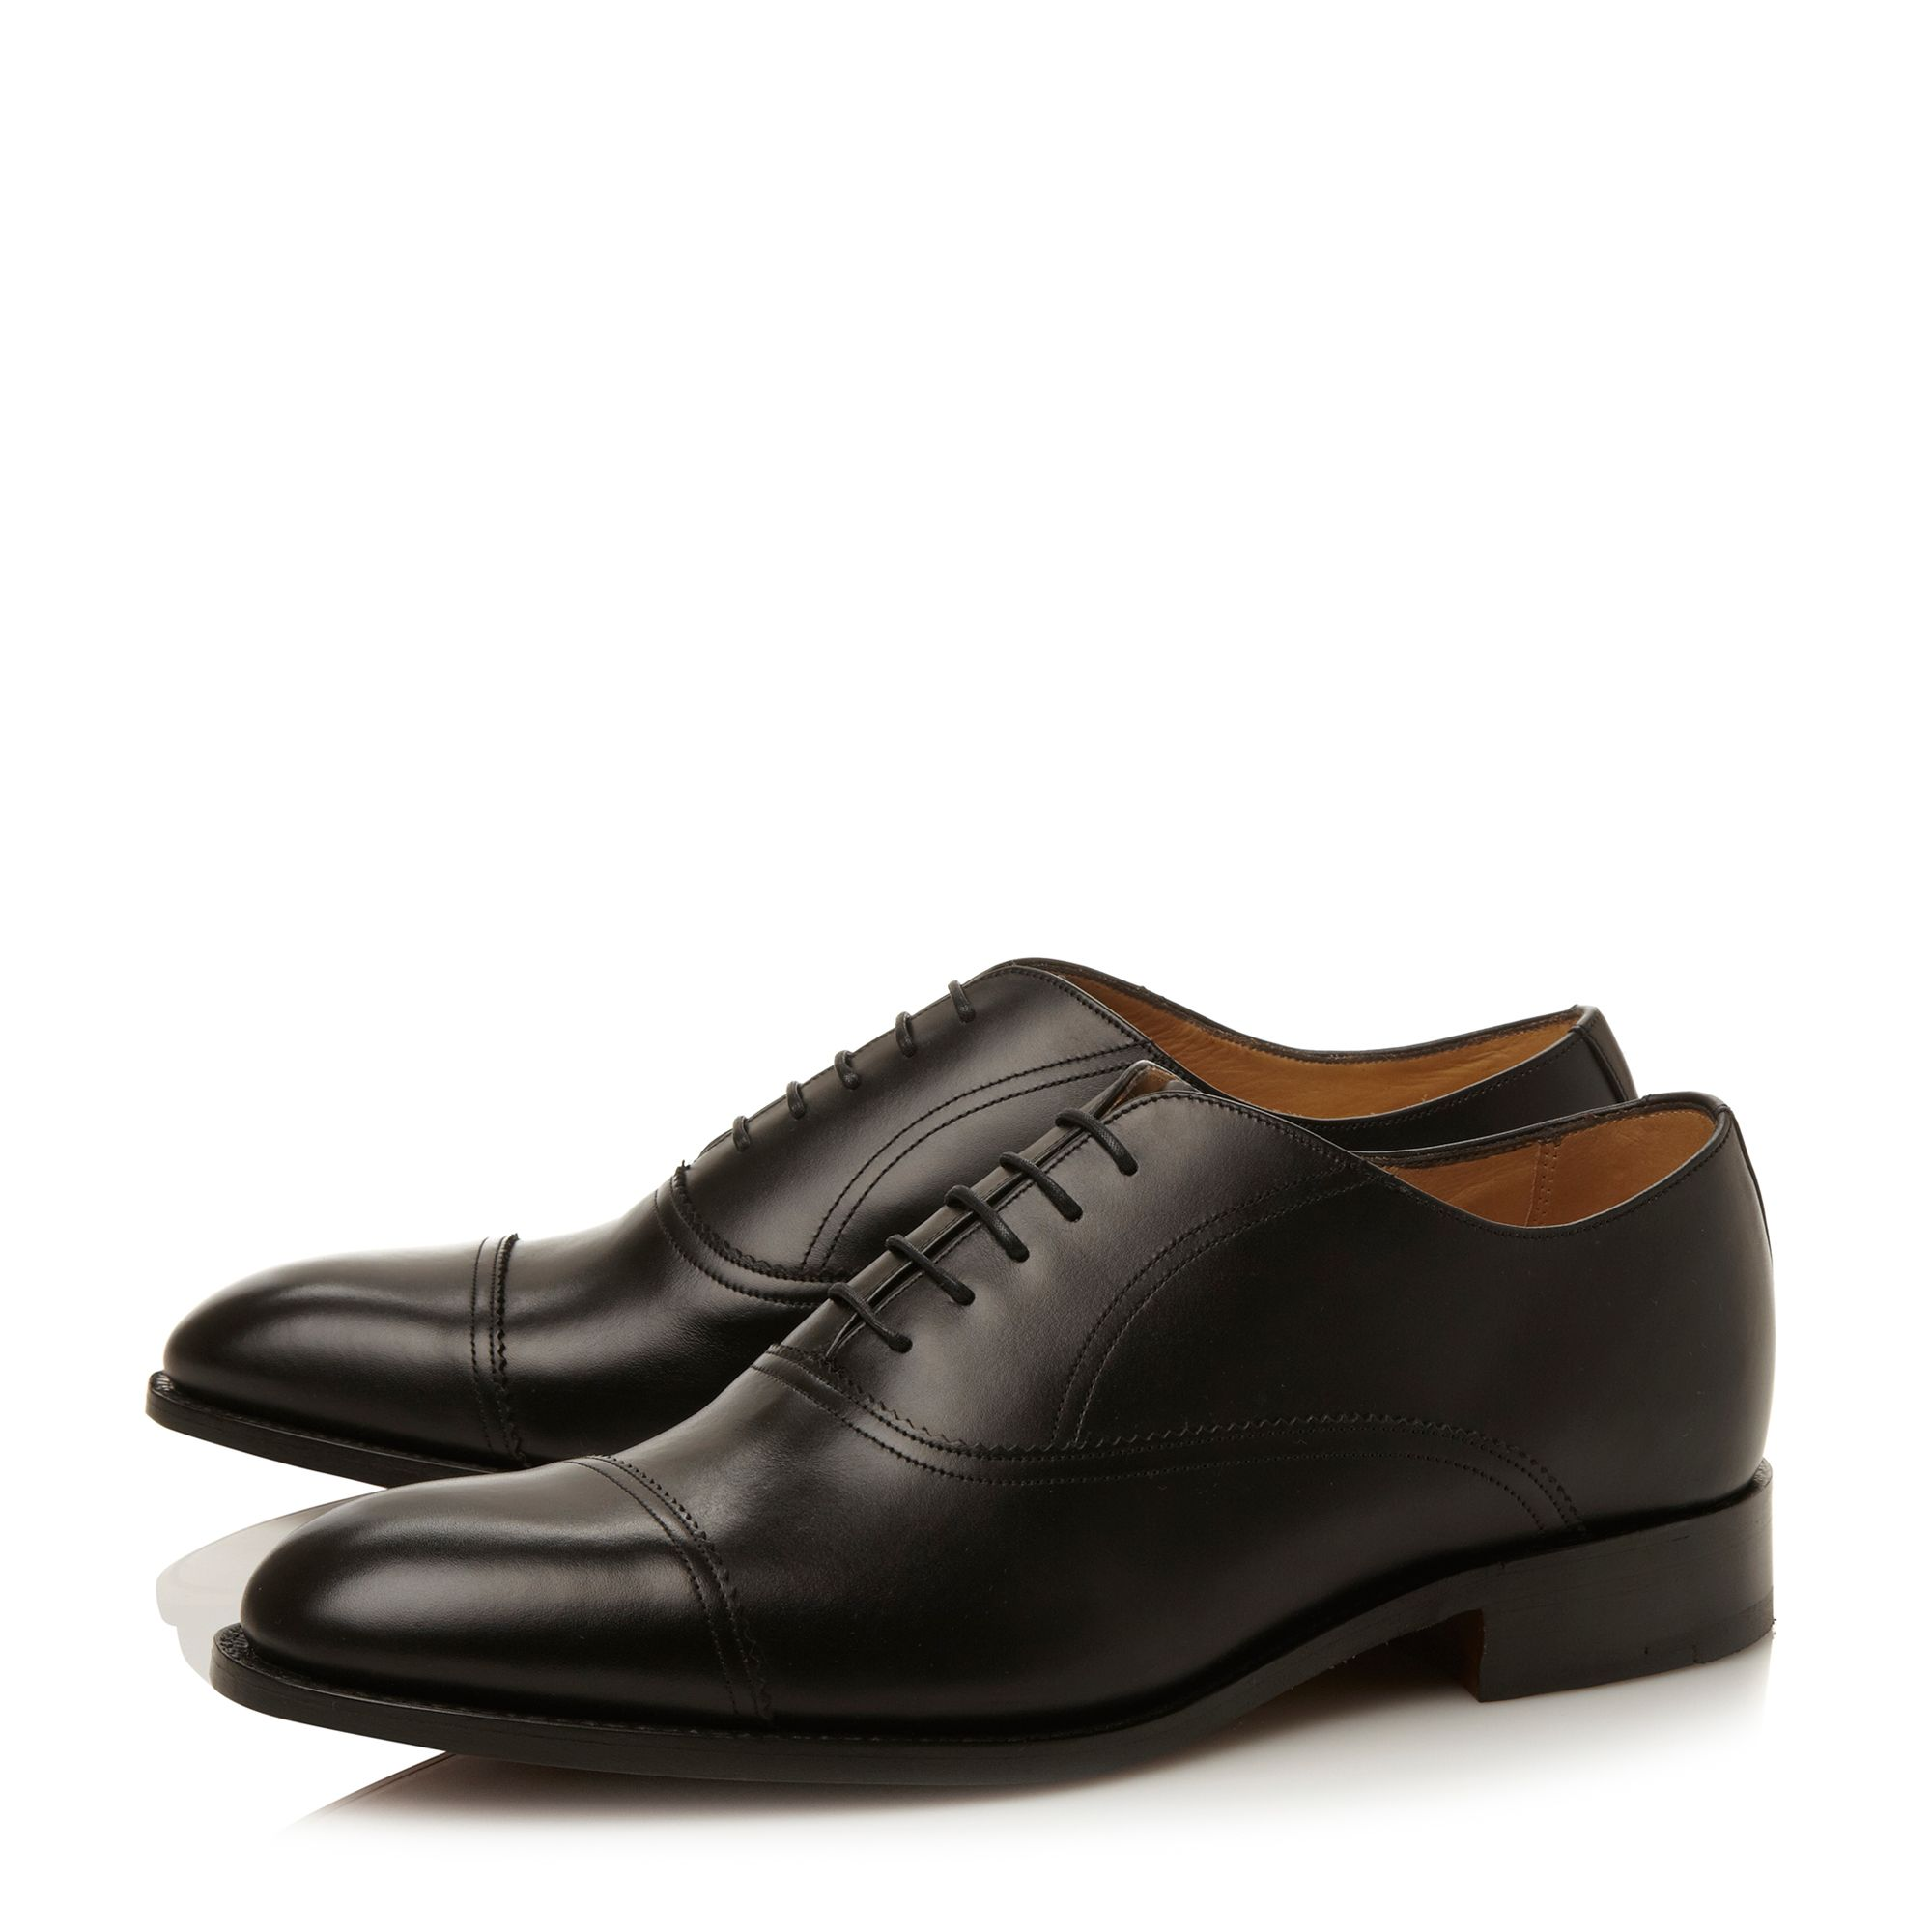 Nevis toecap gimped oxford shoes